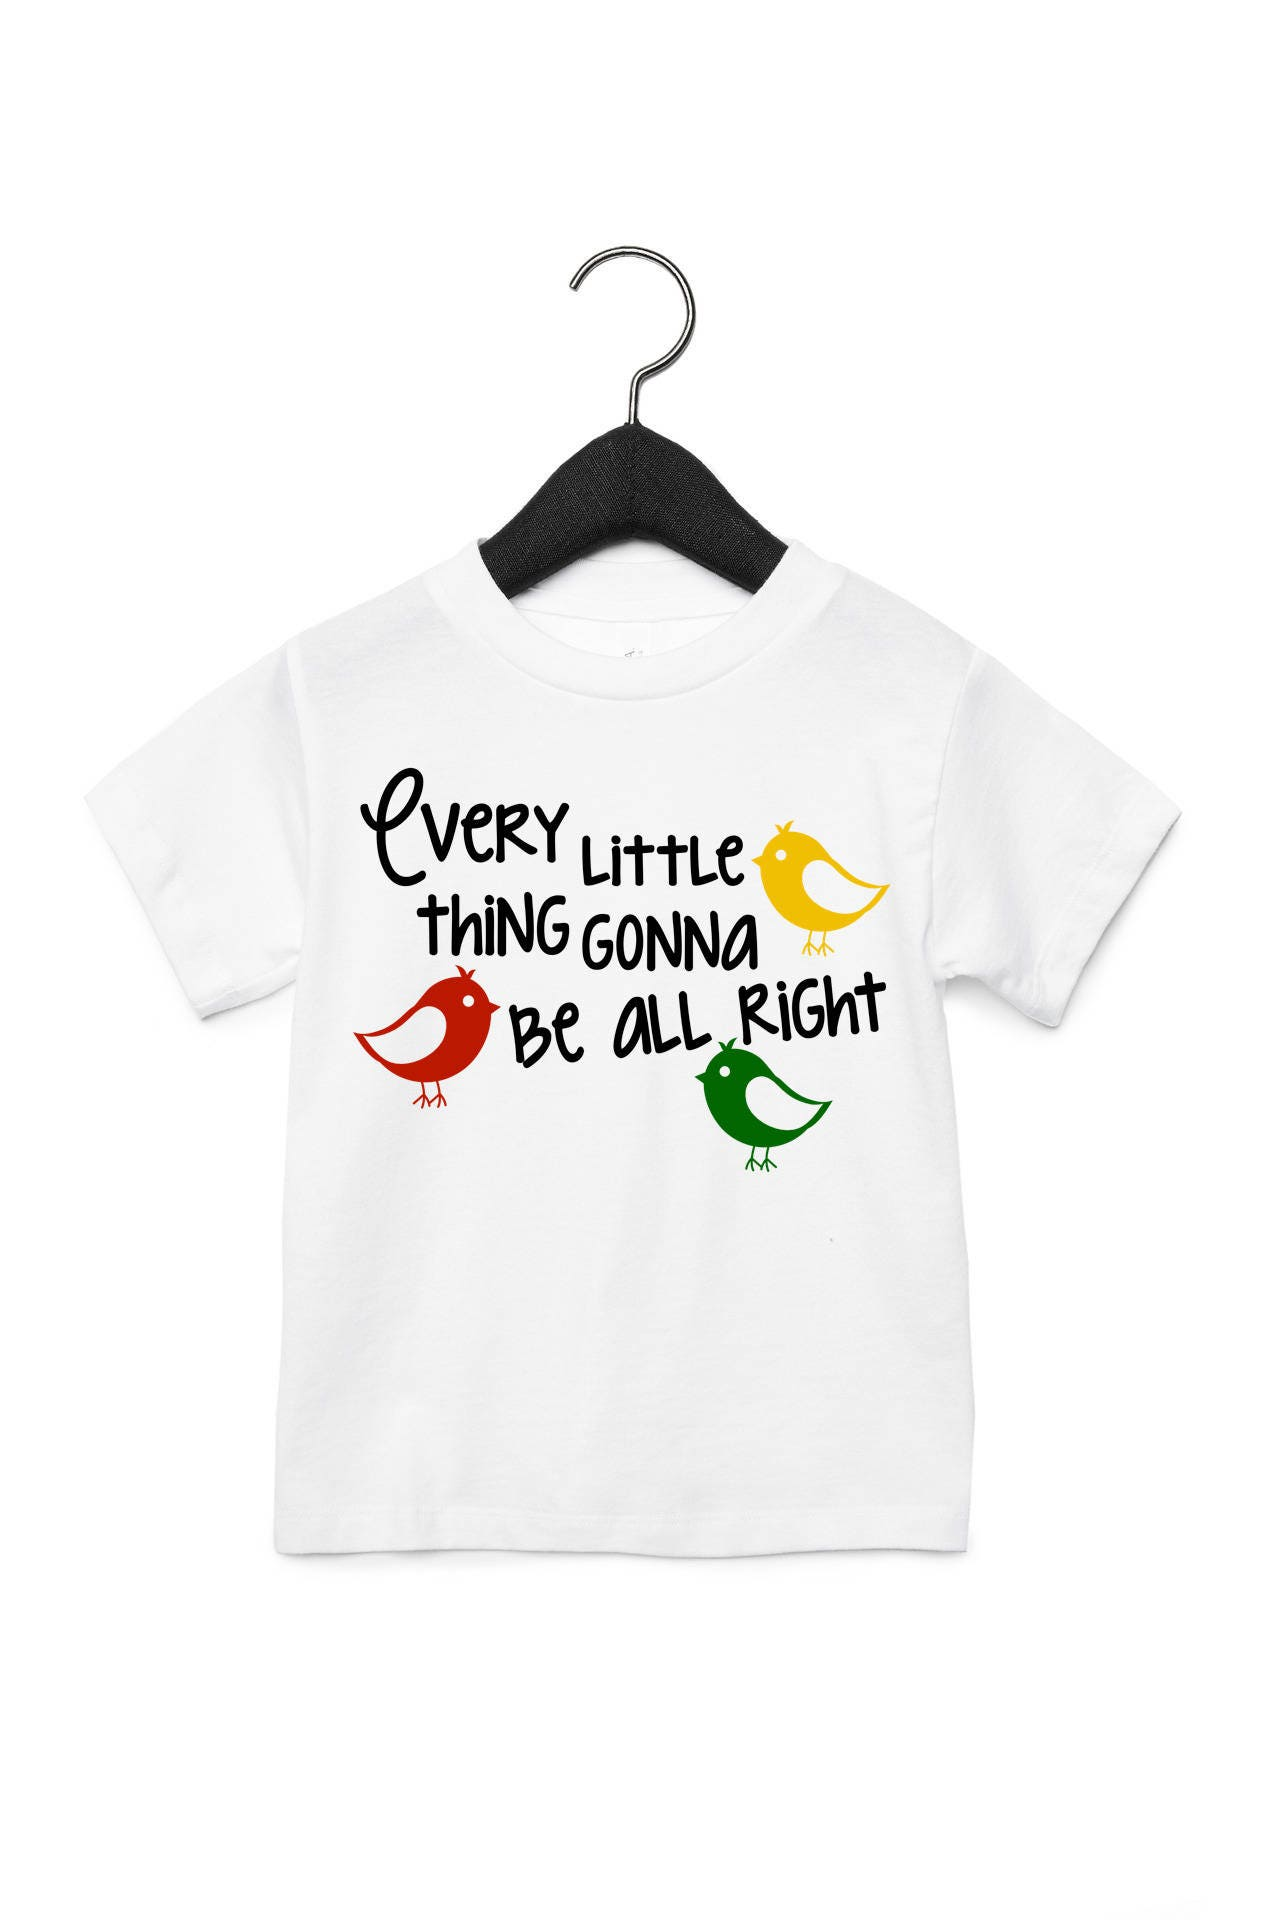 Three Little Birds T shirt Baby Clothes Rasta Clothing Red